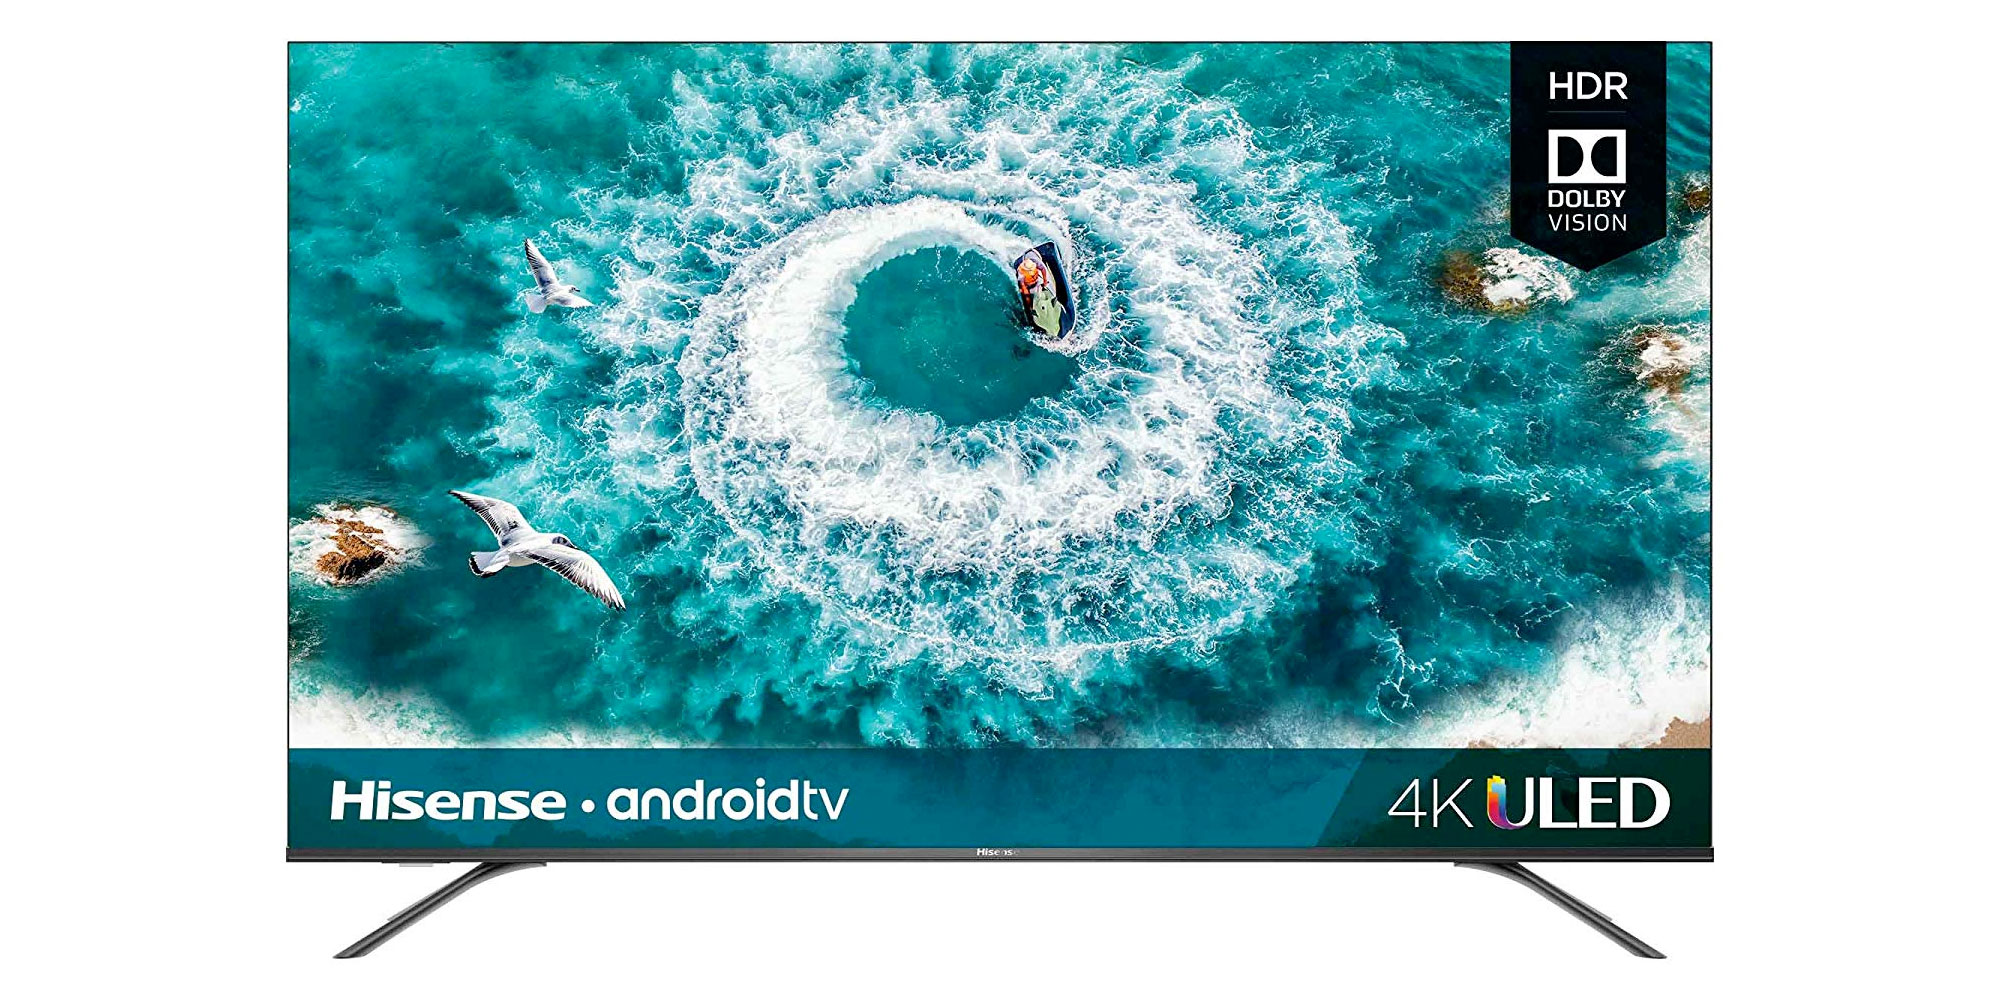 Upgrade to a Hisense 4K HDR10/Dolby Vision Smart UHDTV from $228, more